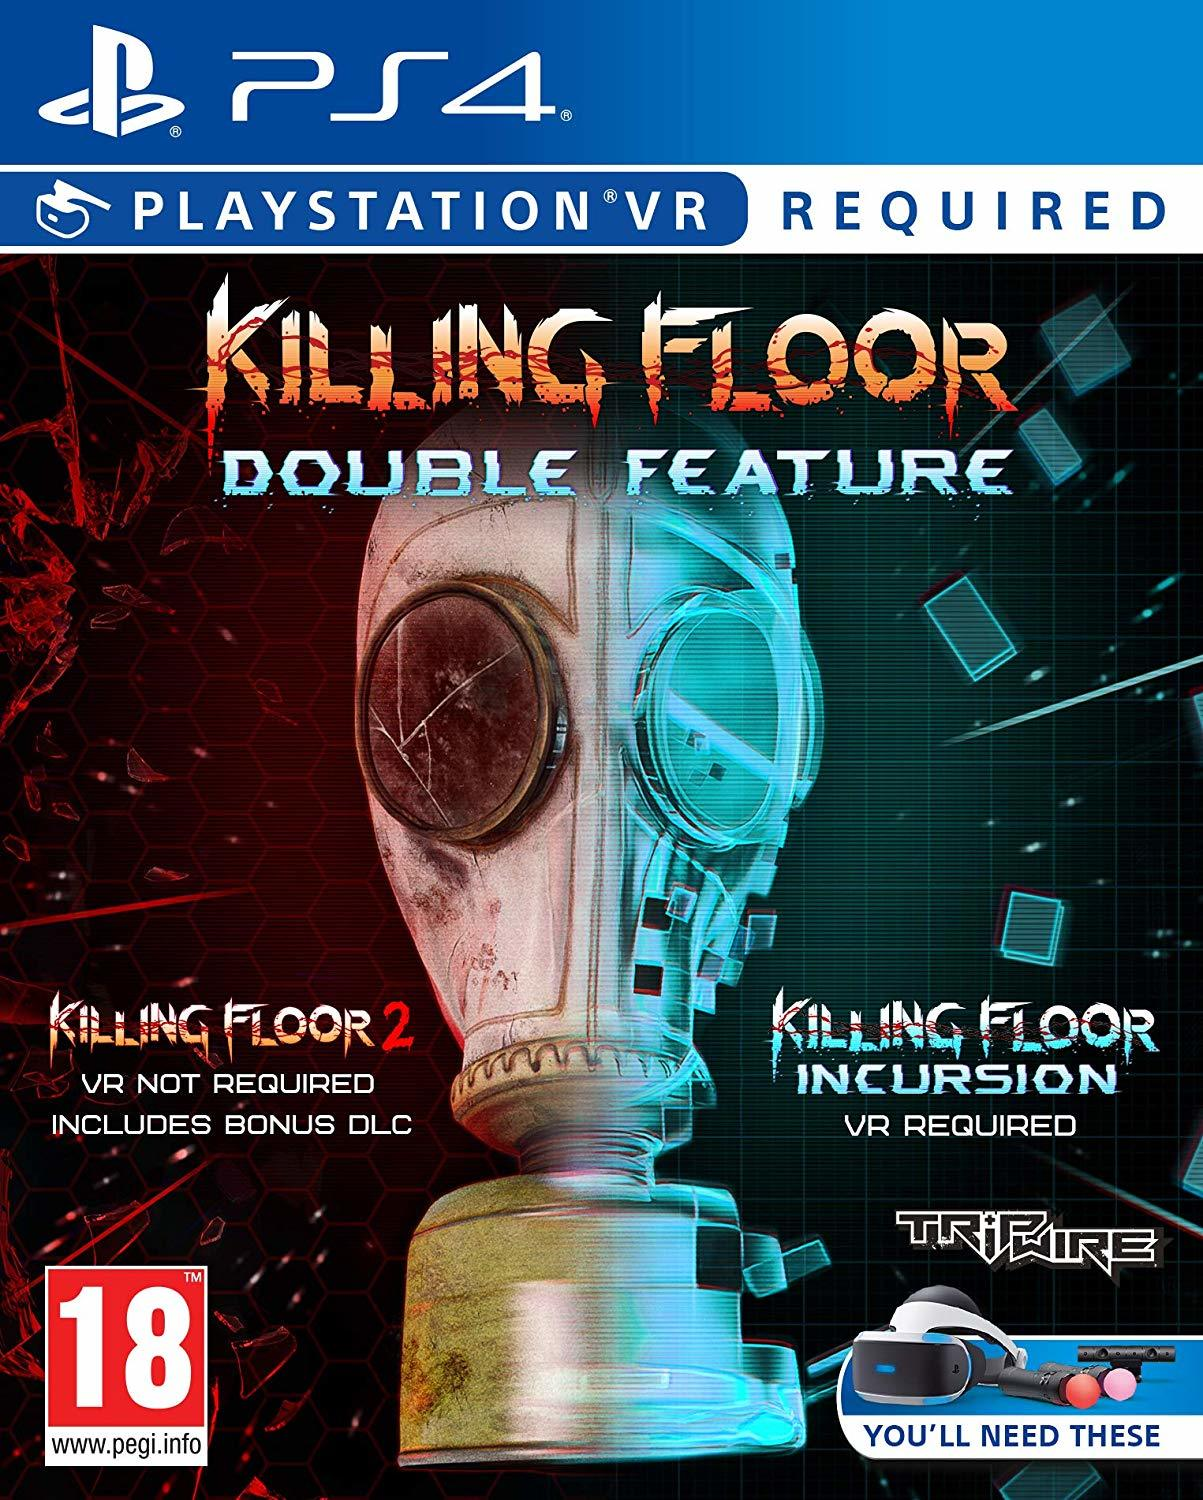 Killing Floor Double Feature VR - PS4